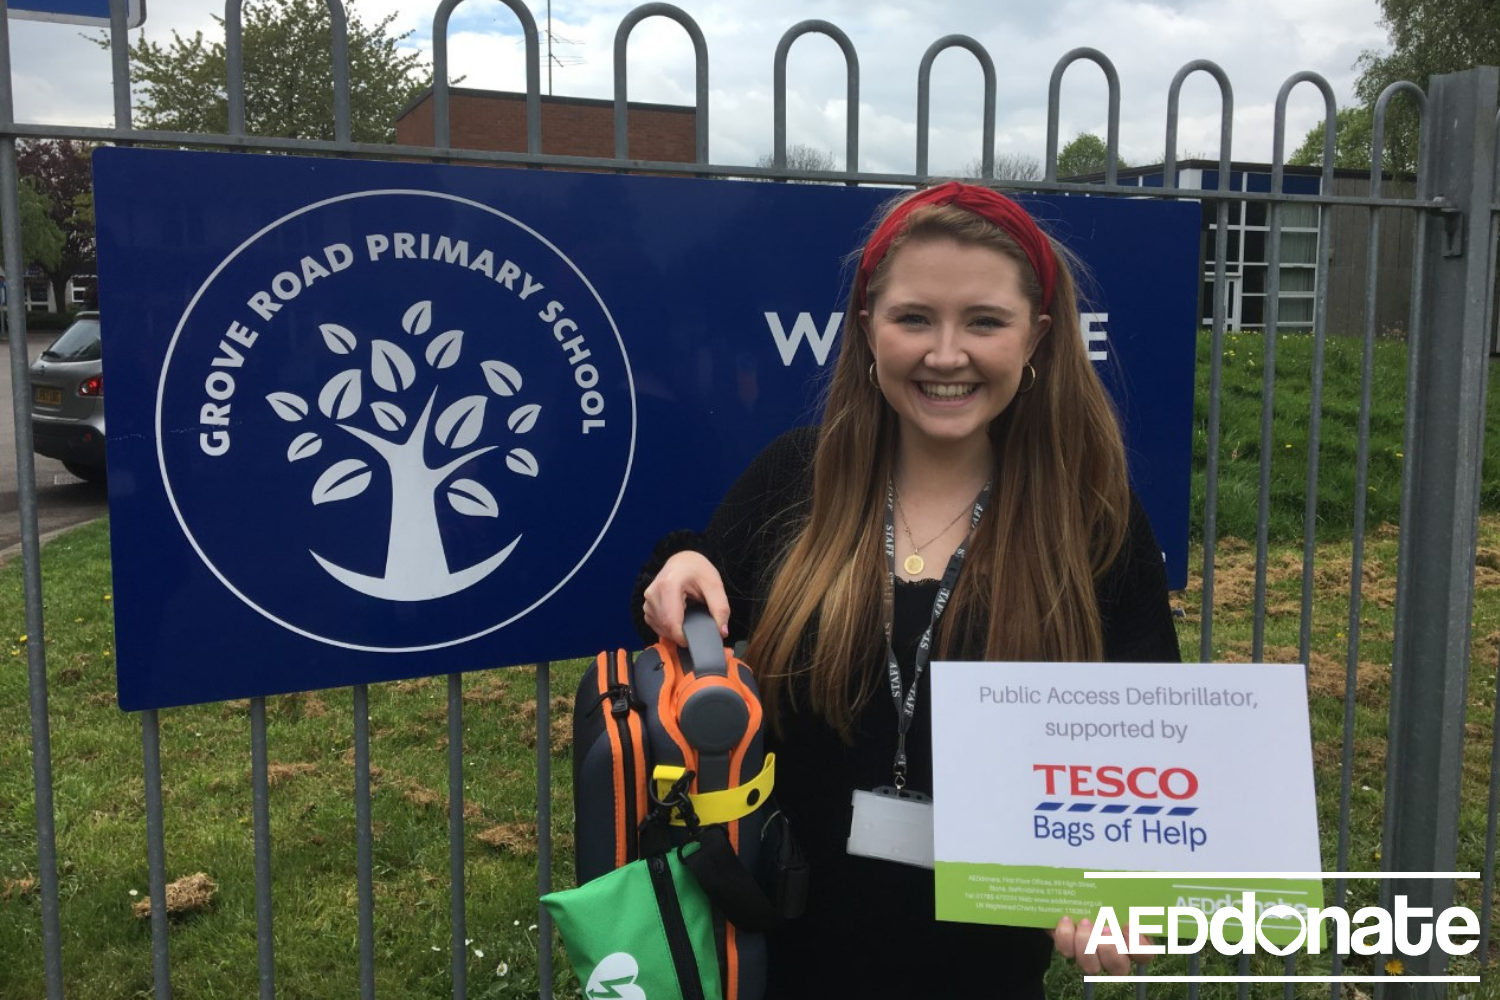 Defibrillator for Grove Road Primary School